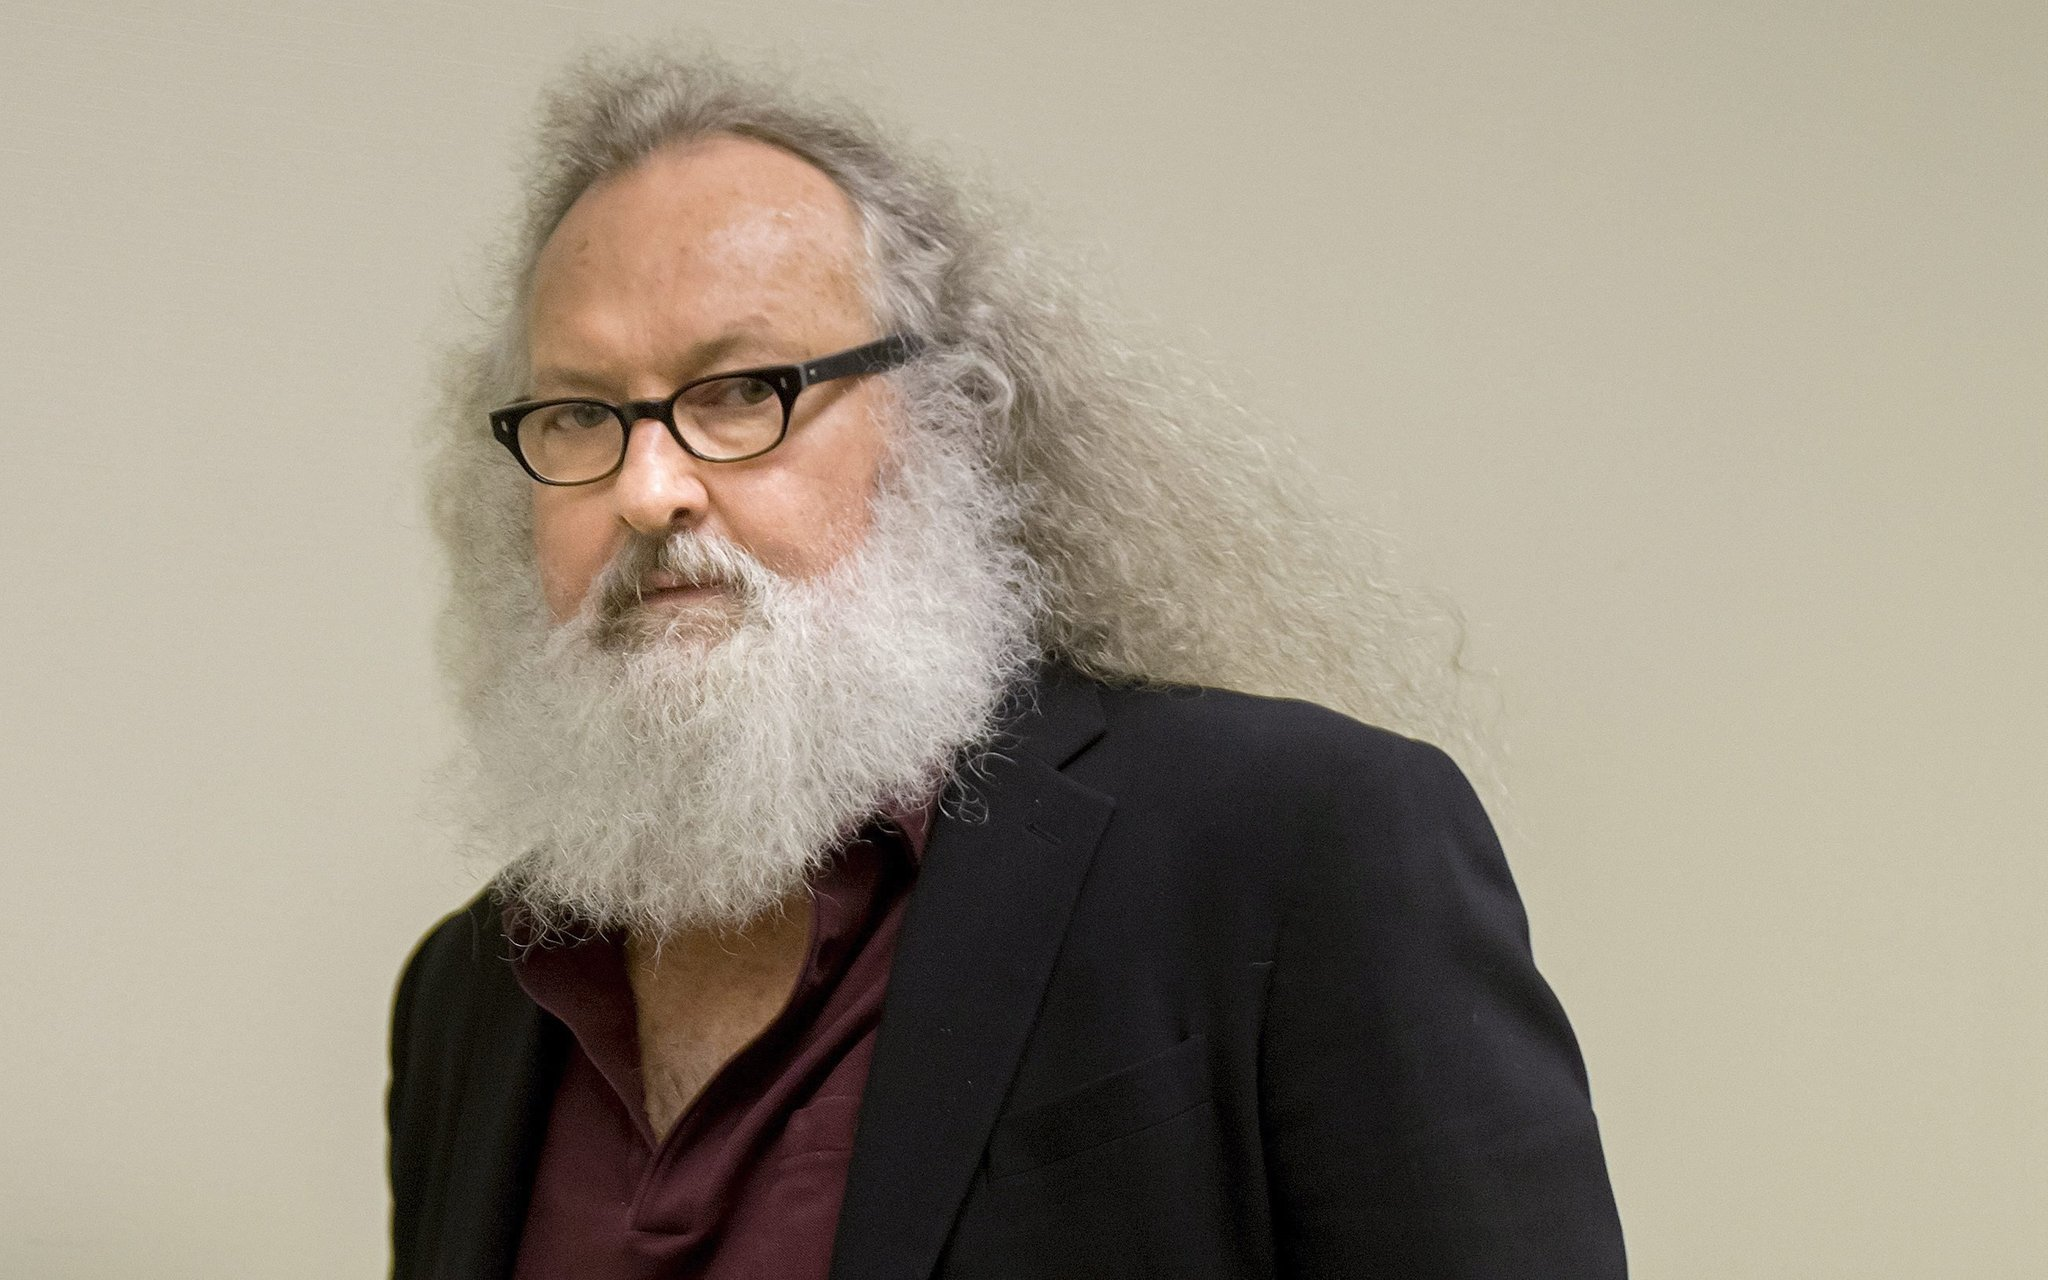 Randy Quaid widescreen wallpapers